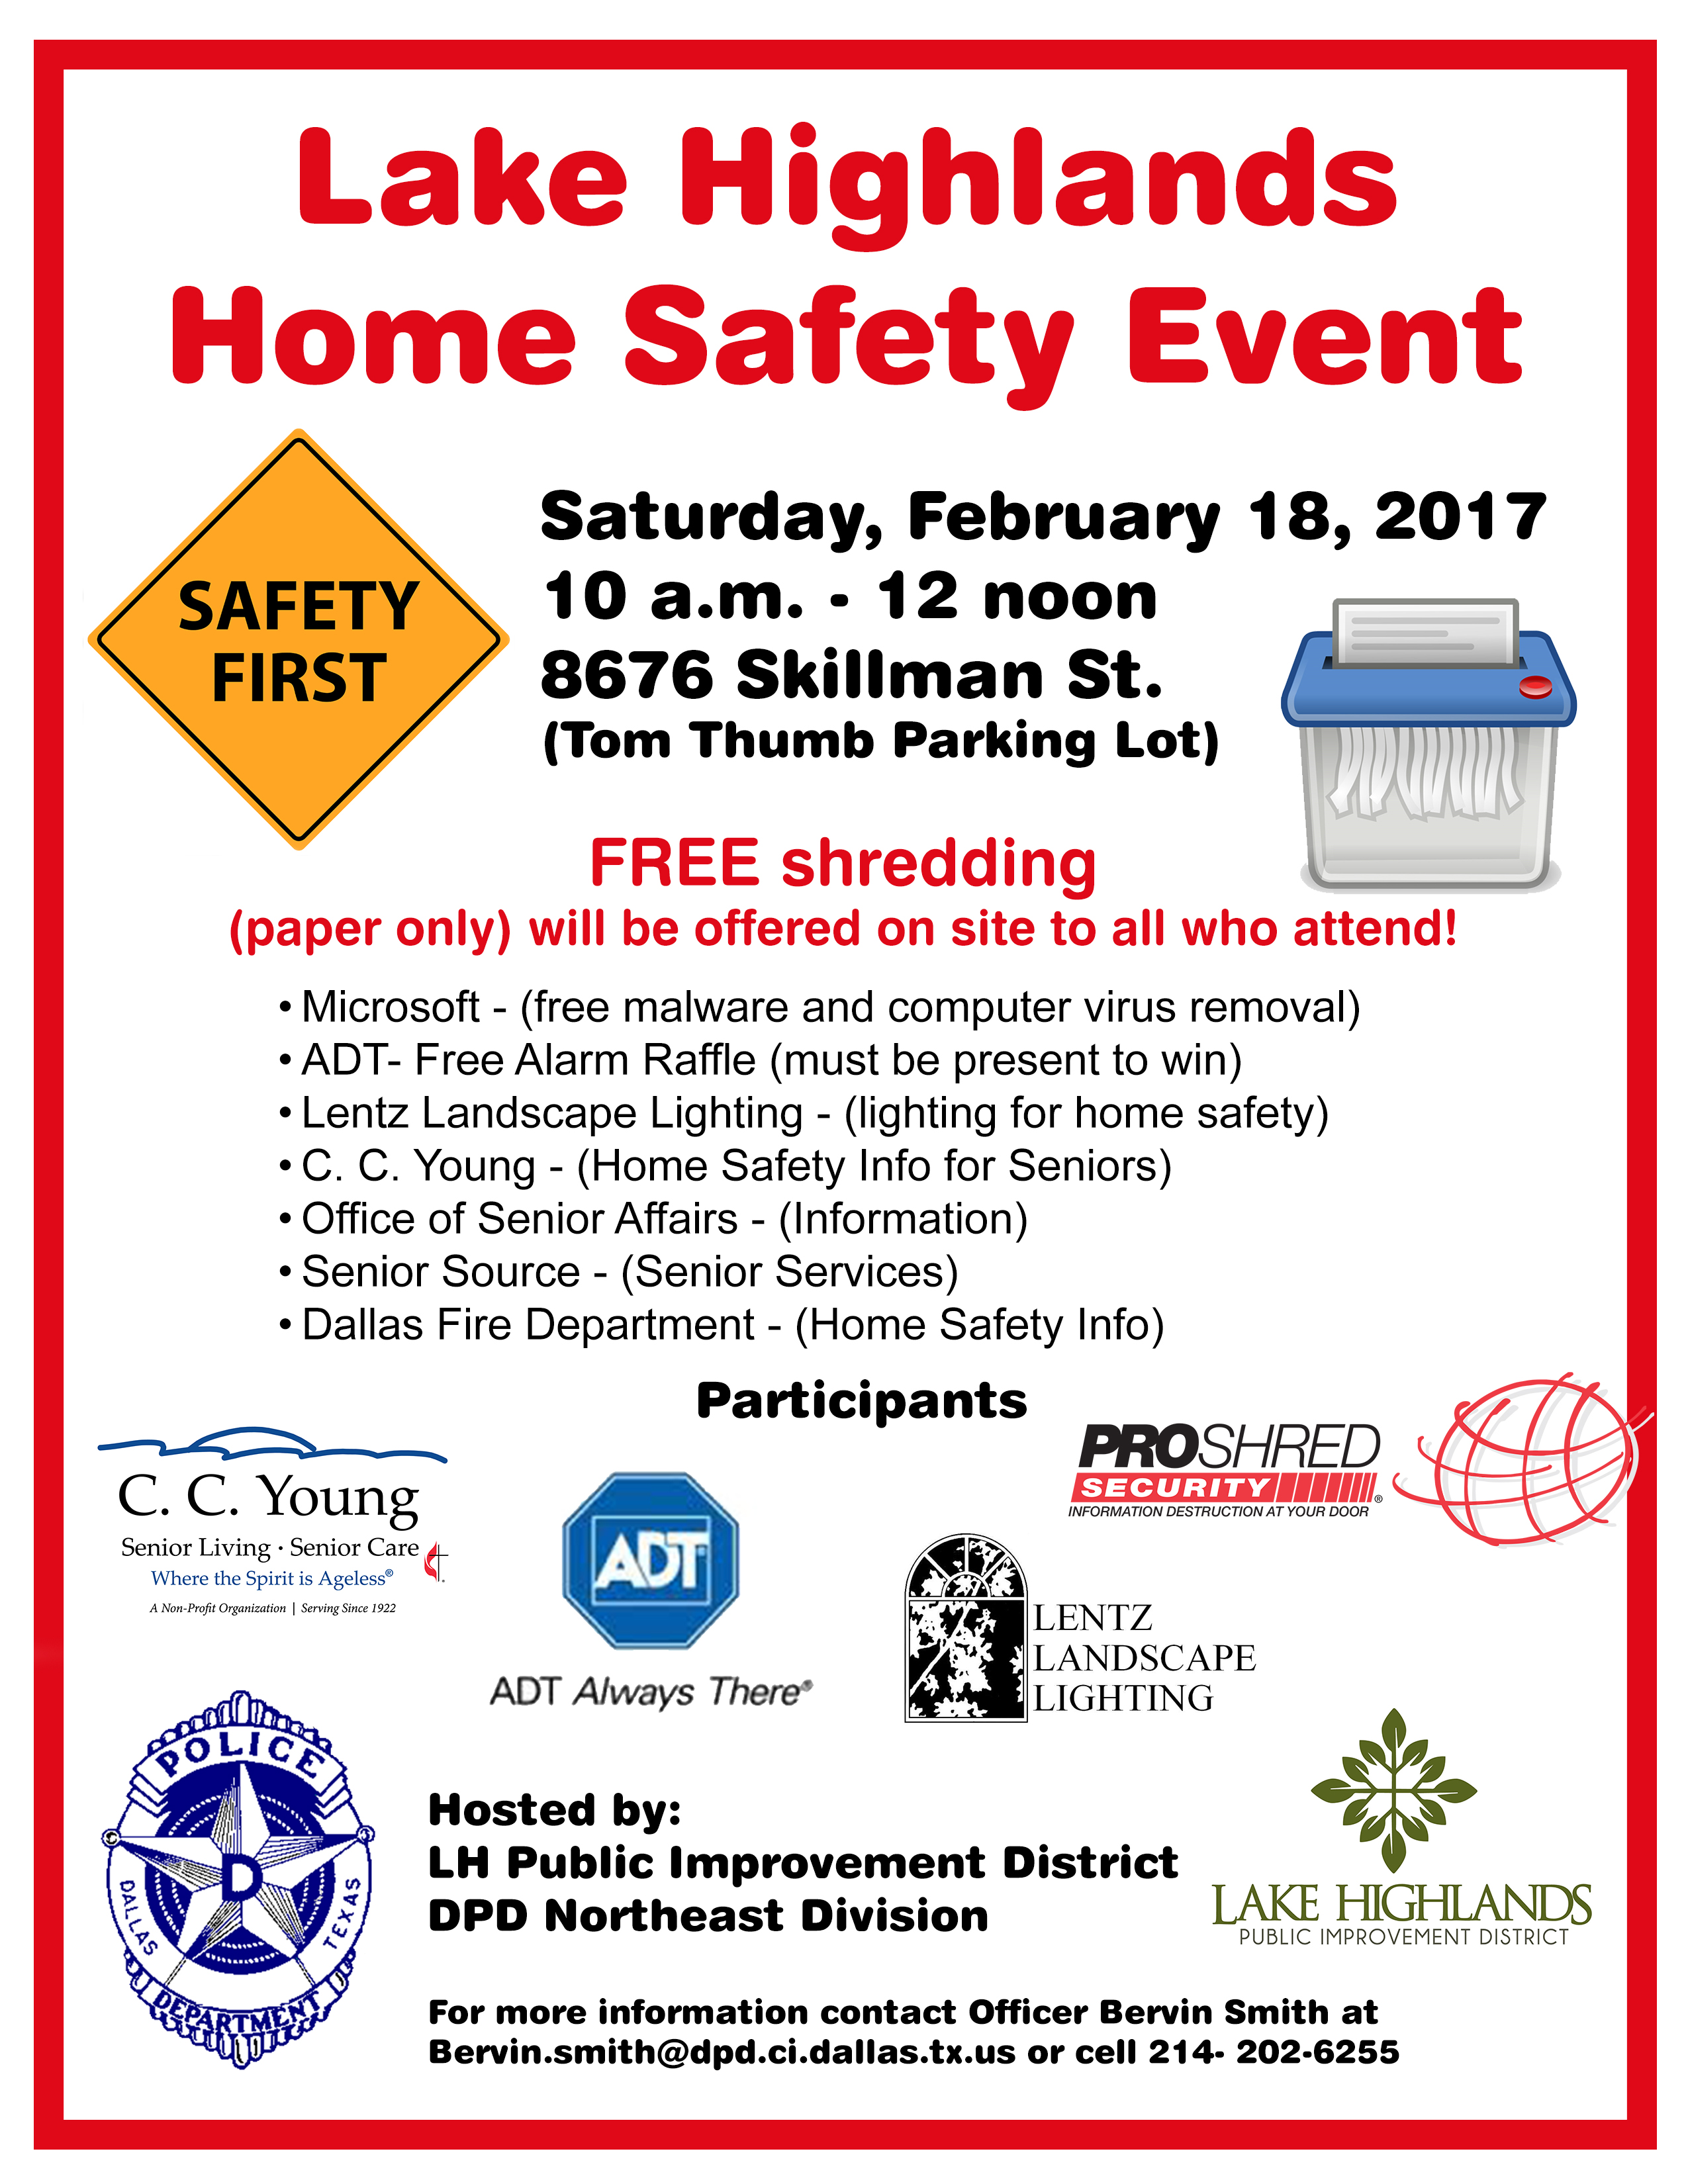 Lake highlands home safety event dpd beat safety event flyer 2017 3 aloadofball Gallery